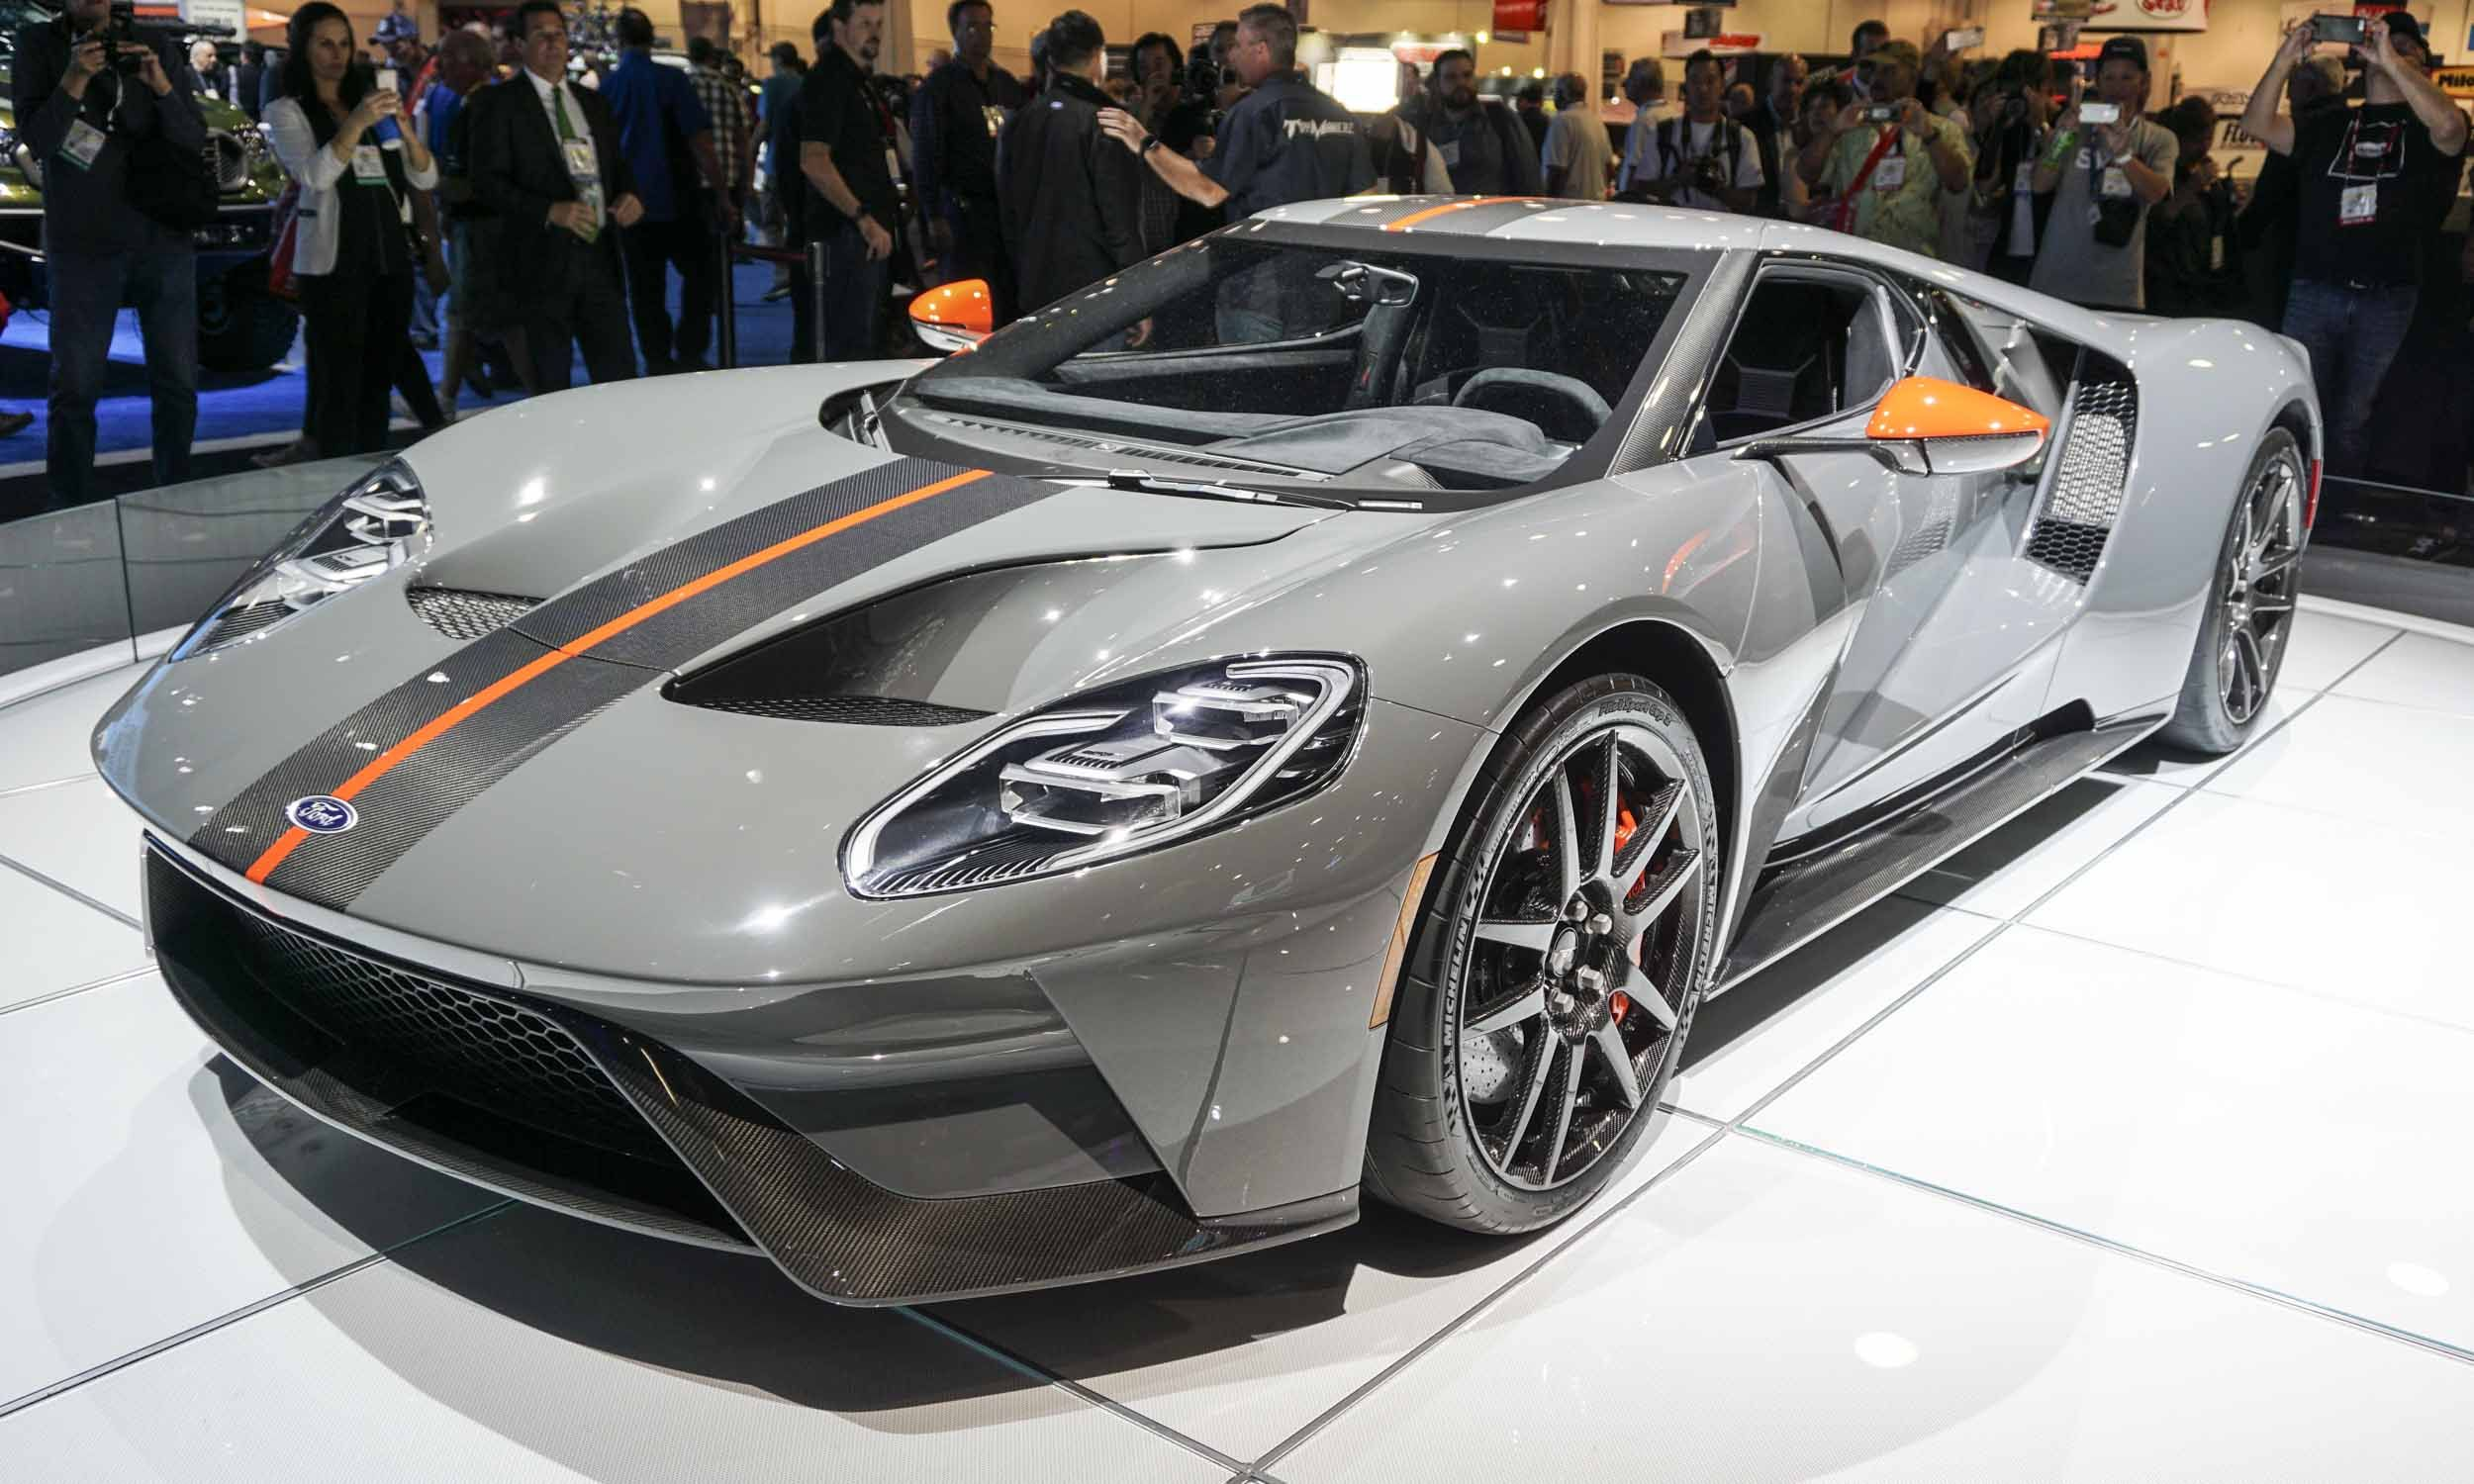 2018 Sema Show 2019 Ford Gt Carbon Series Ford Gt 2019 Ford Ford